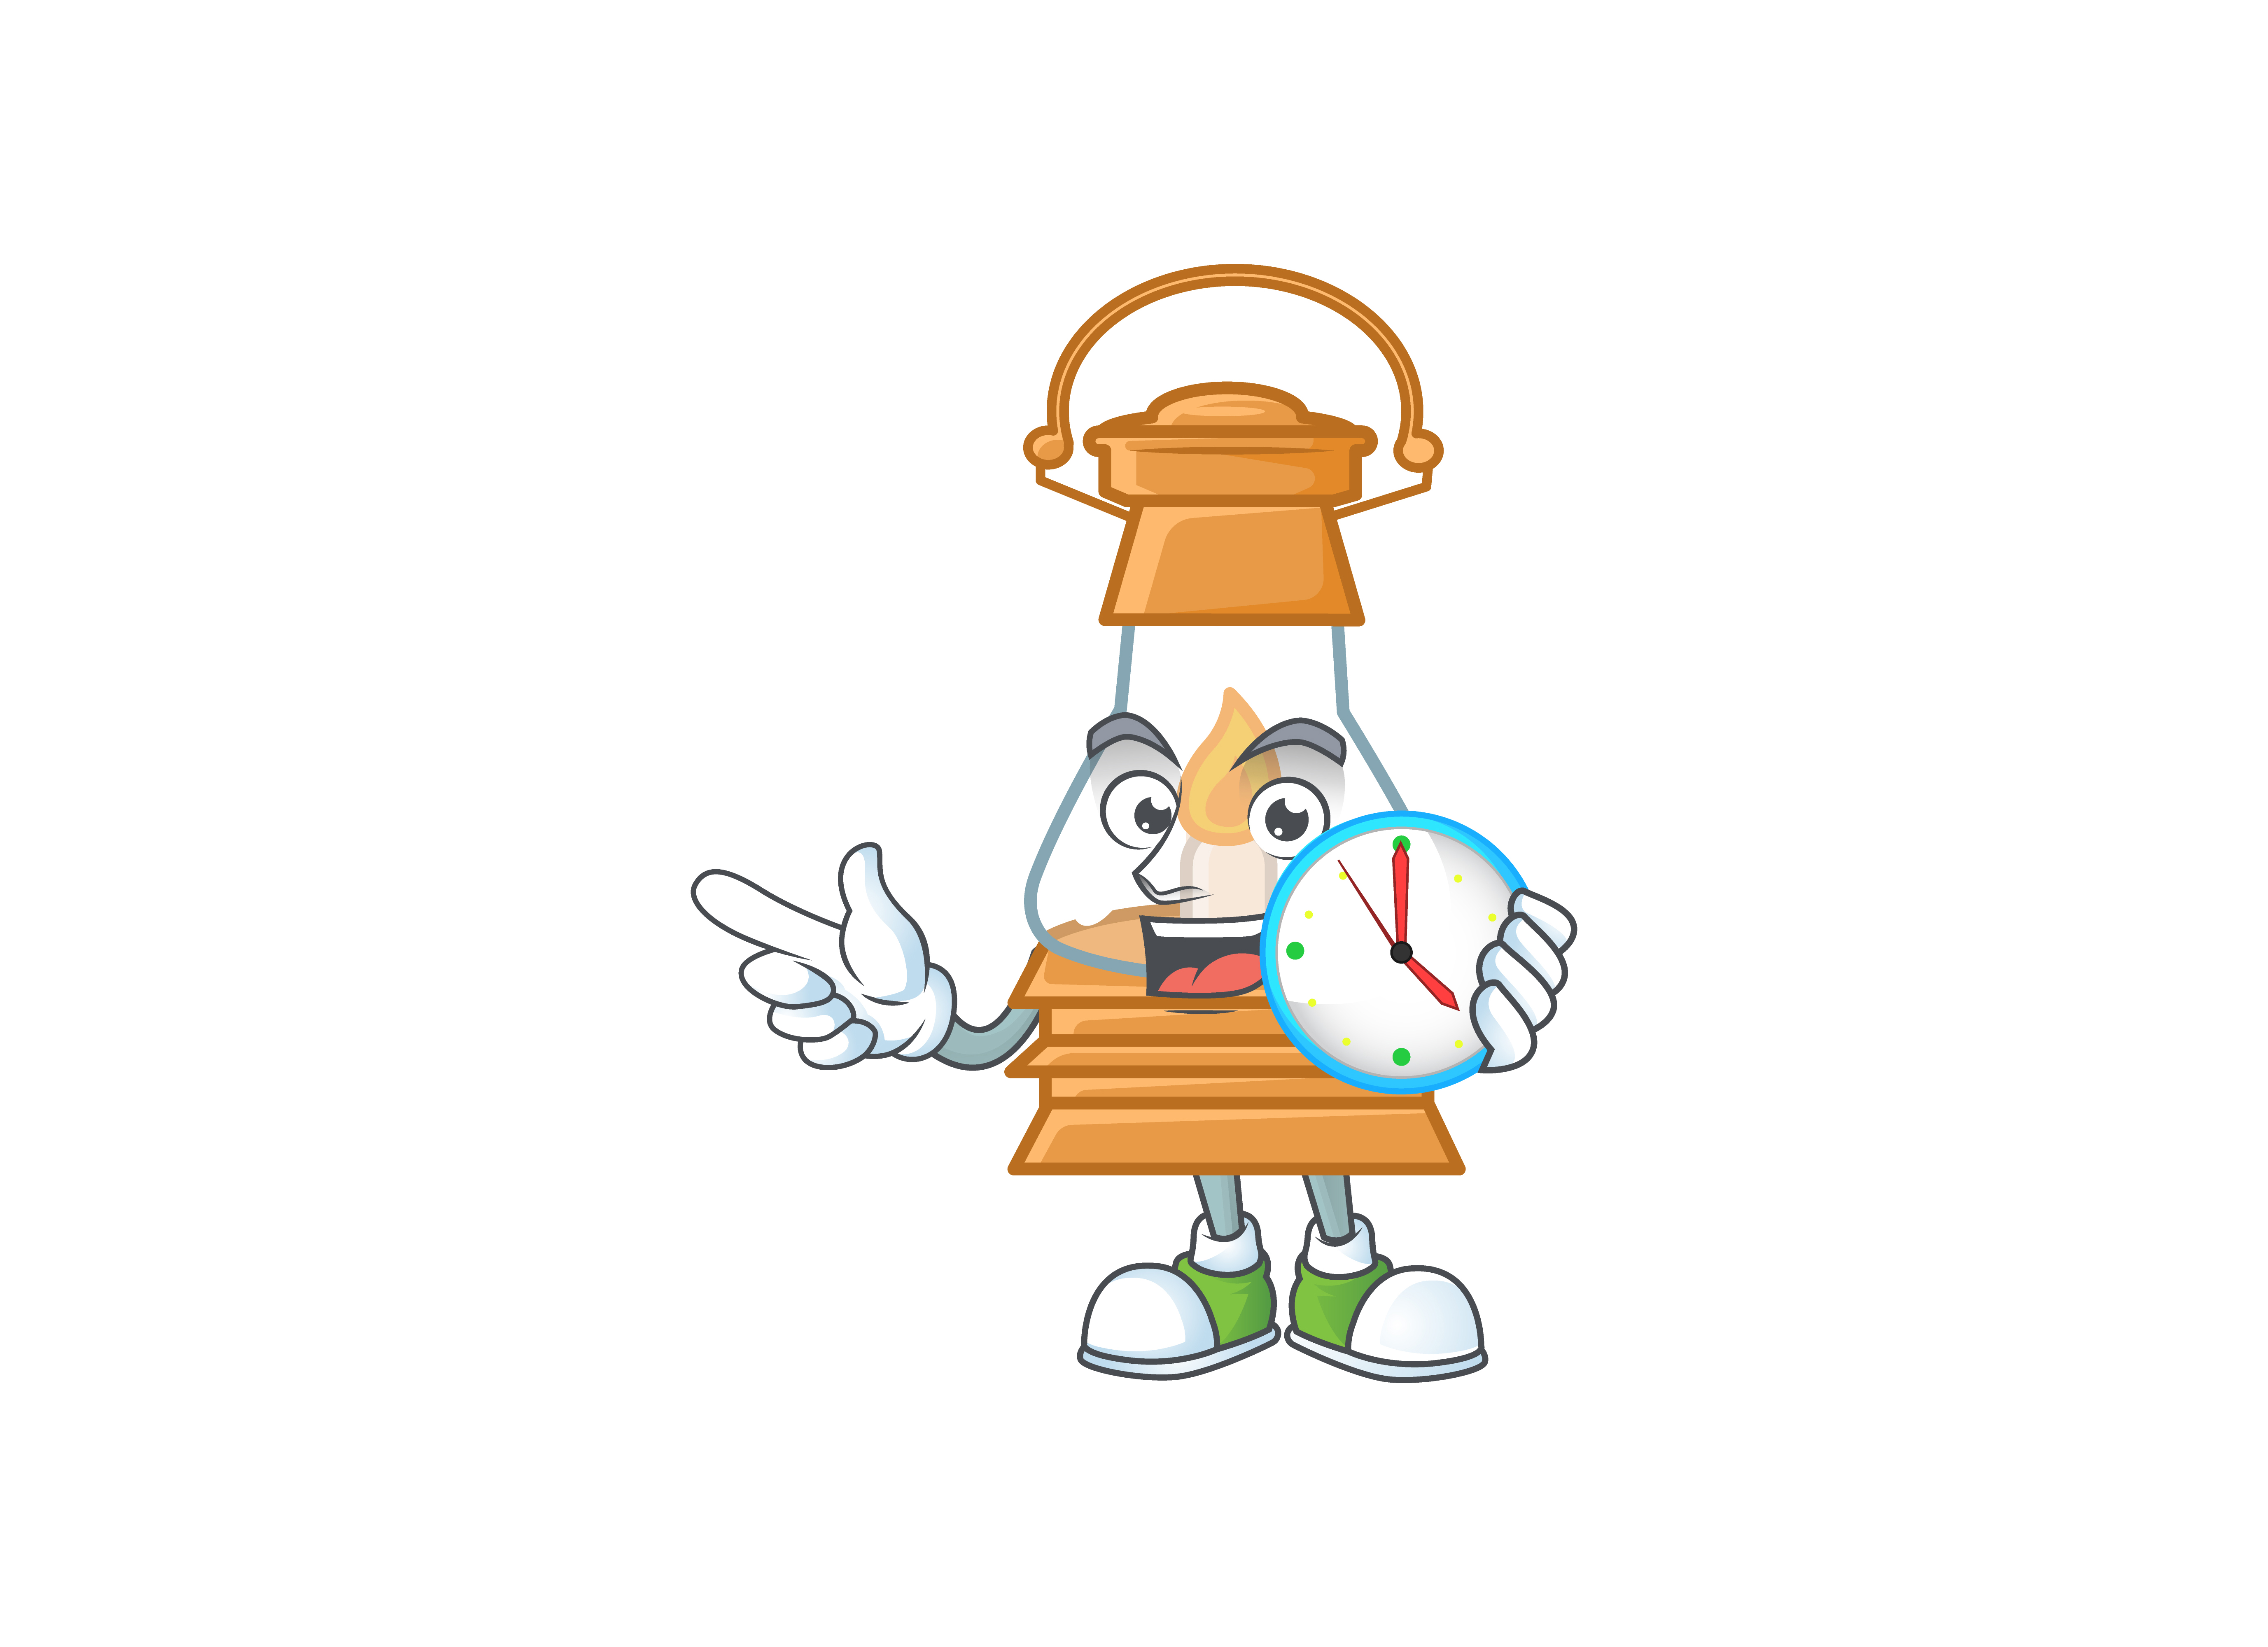 Download Free Oil Lamp Cartoon Character Style Graphic By Kongvector2020 Creative Fabrica for Cricut Explore, Silhouette and other cutting machines.